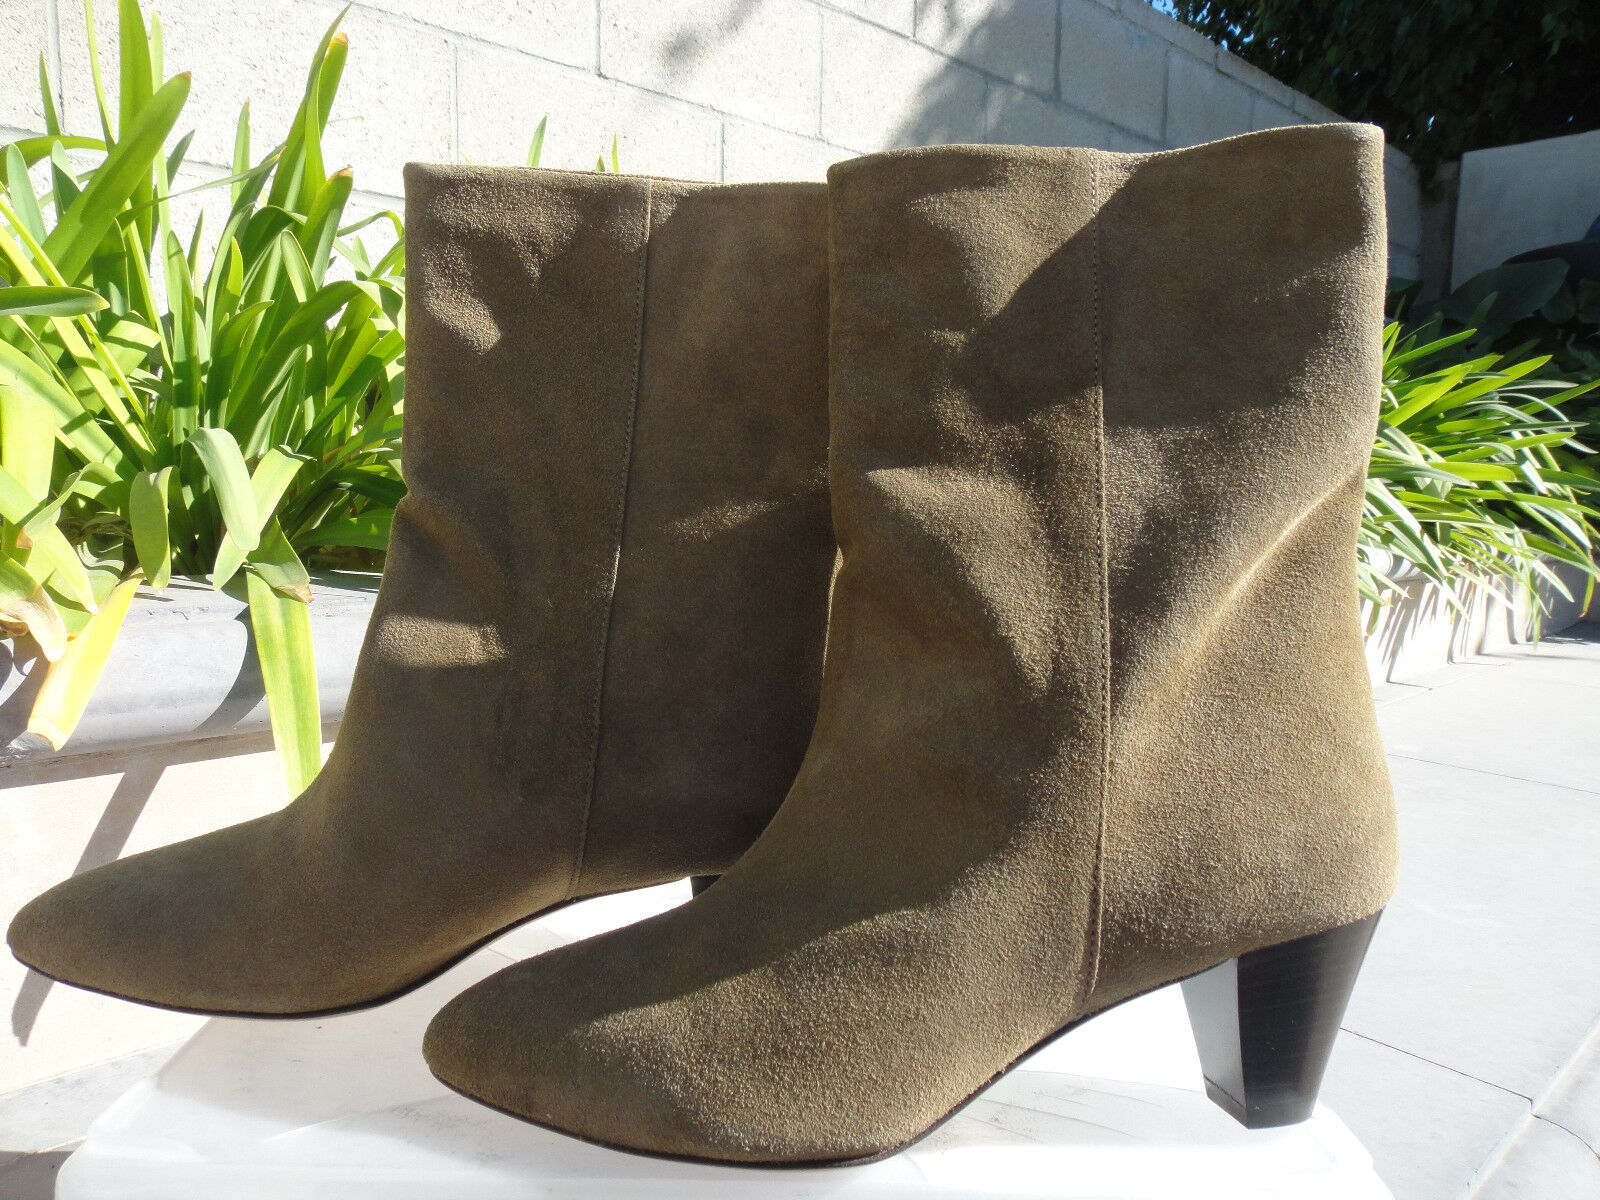 Isabel Marant DYNA, Suede, Heeled Boot Bootie, Pull-on, Portugal, Wmn's Sz EUR37